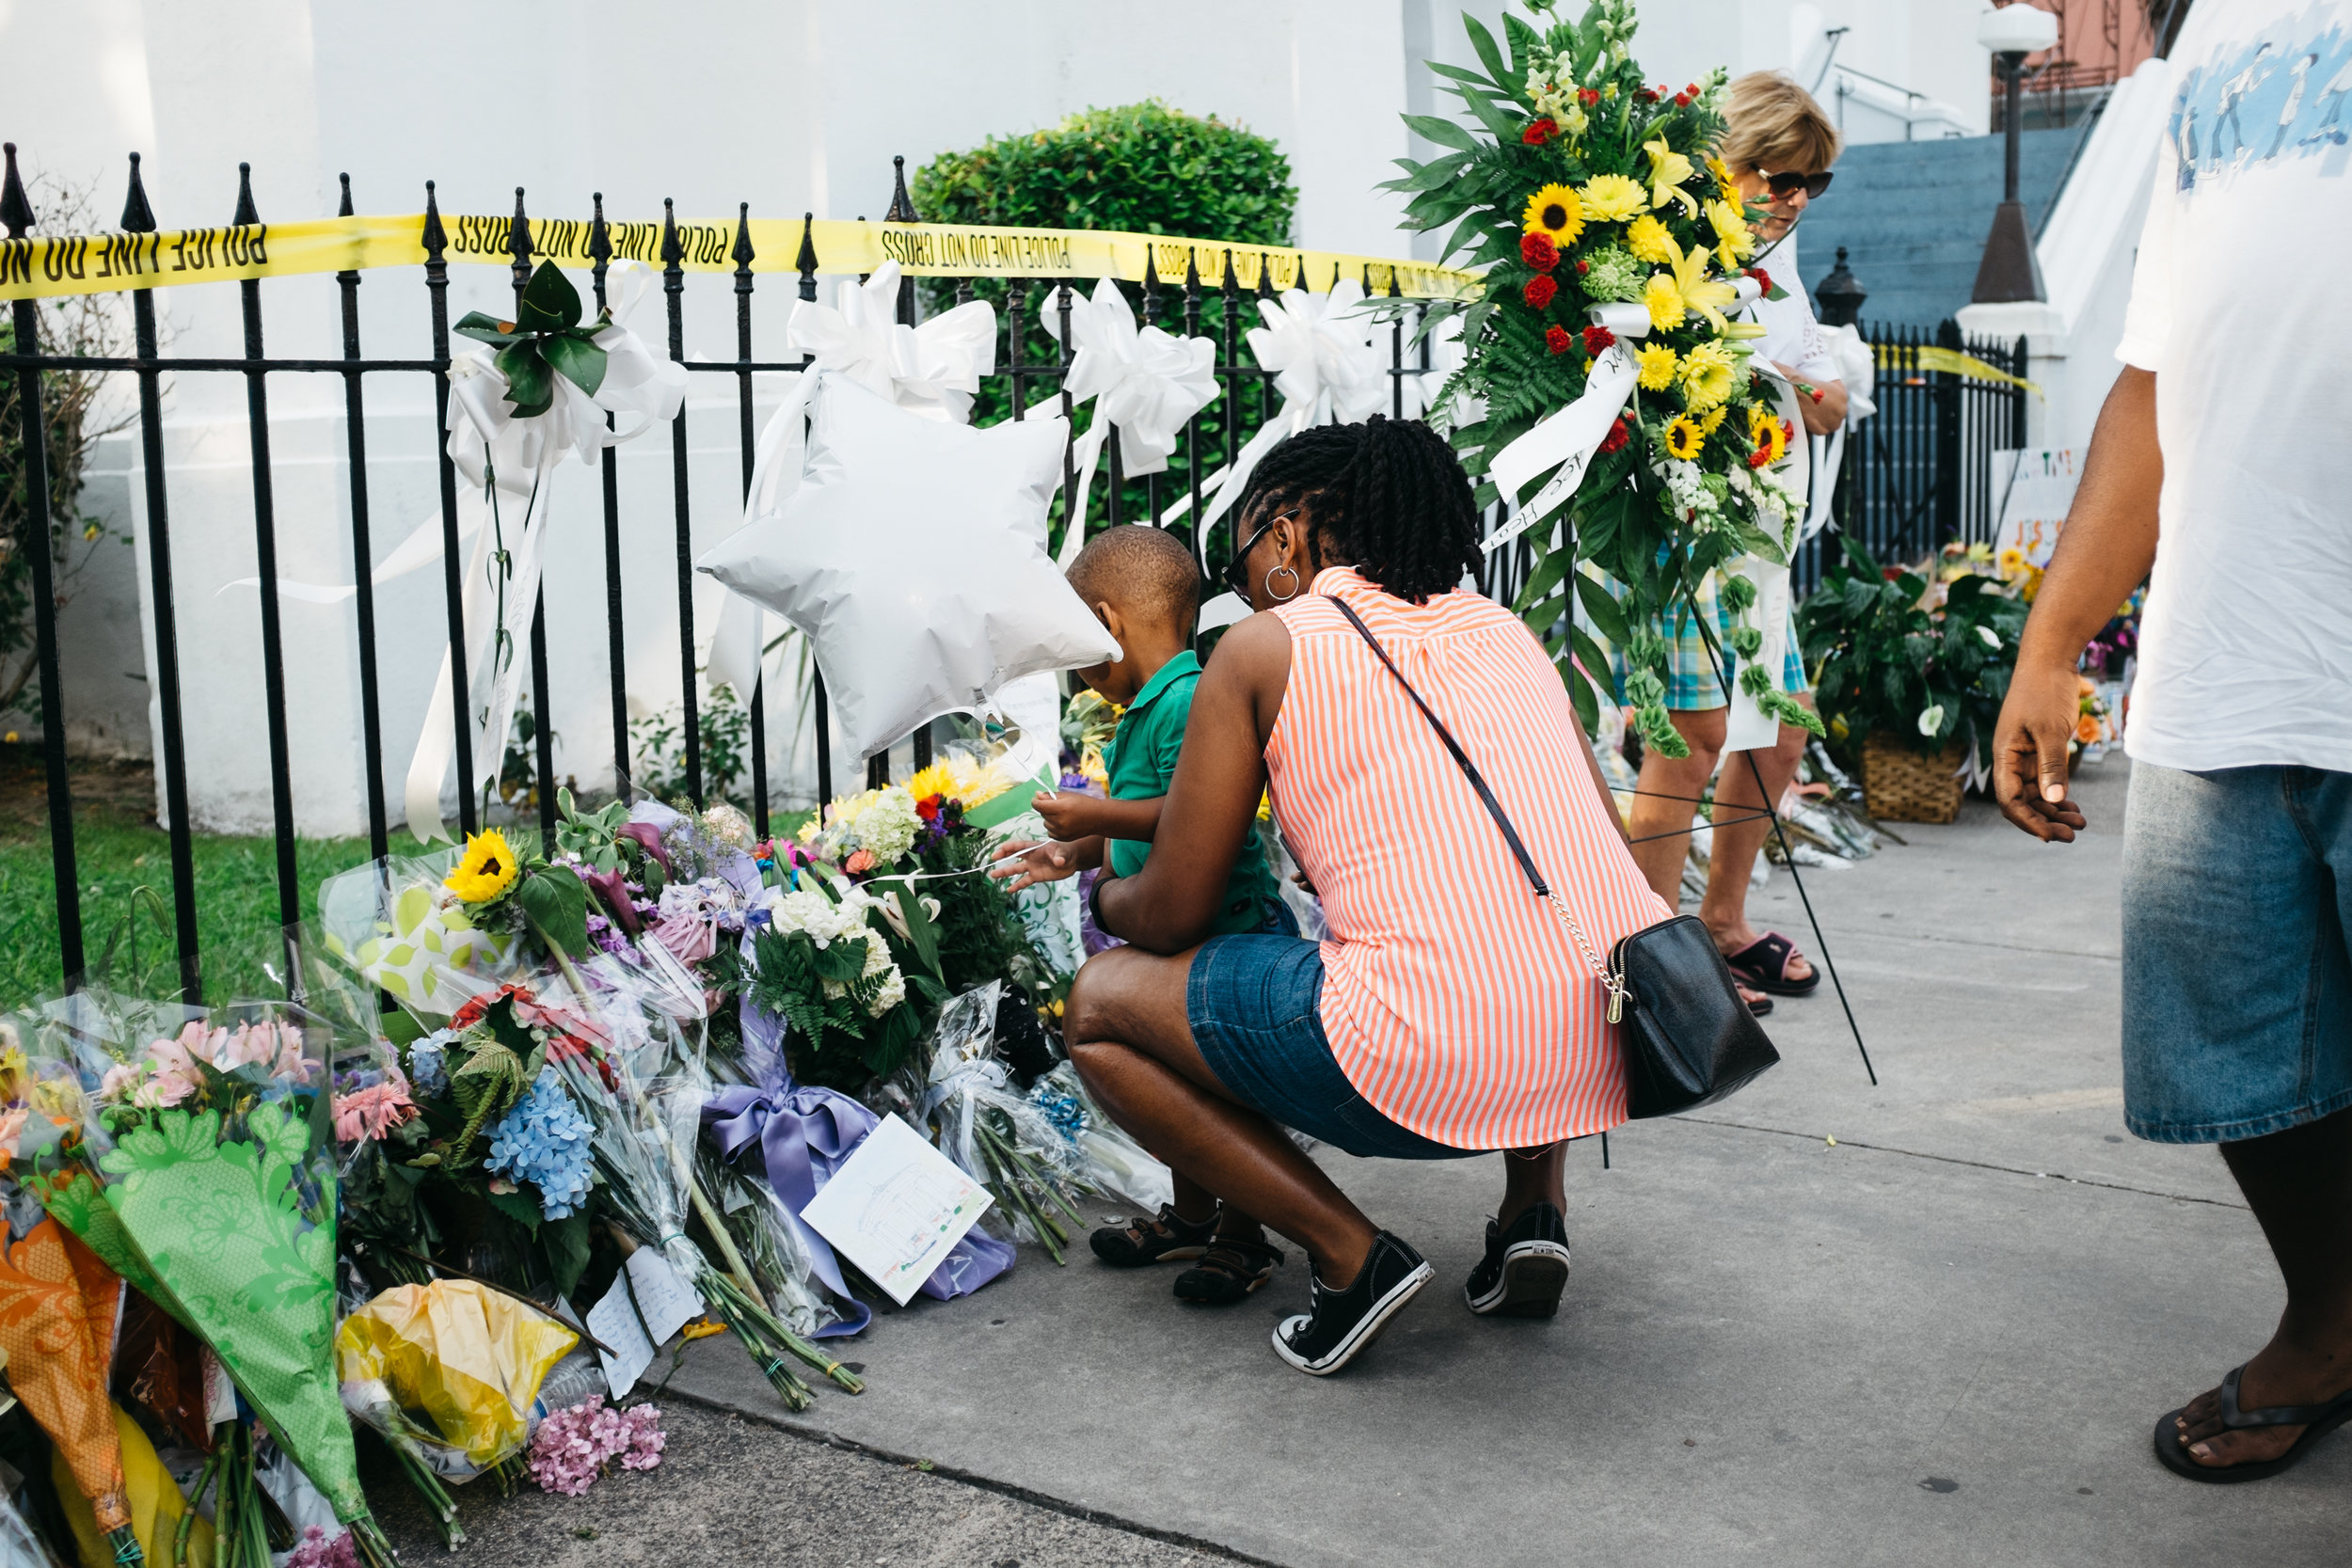 A mother and her son pay their respects to the nine victims of the Emanuel A.M.E. Church shootings on June 19, 2015, Charleston, SC.